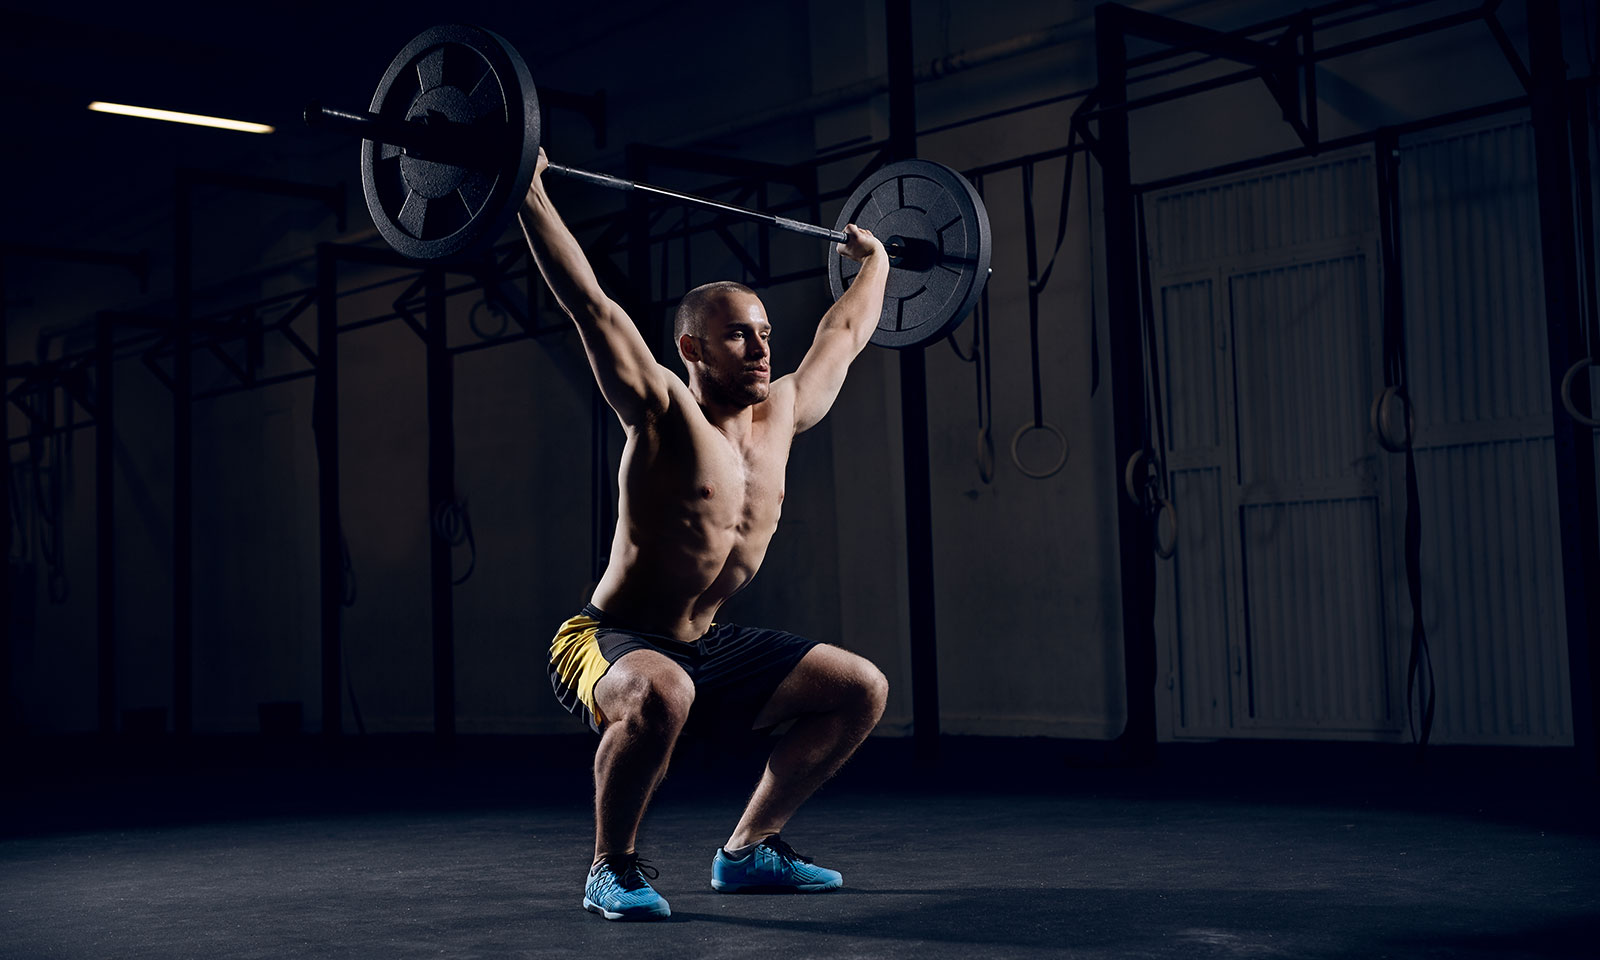 Tips For Improving Your Overhead Pressing